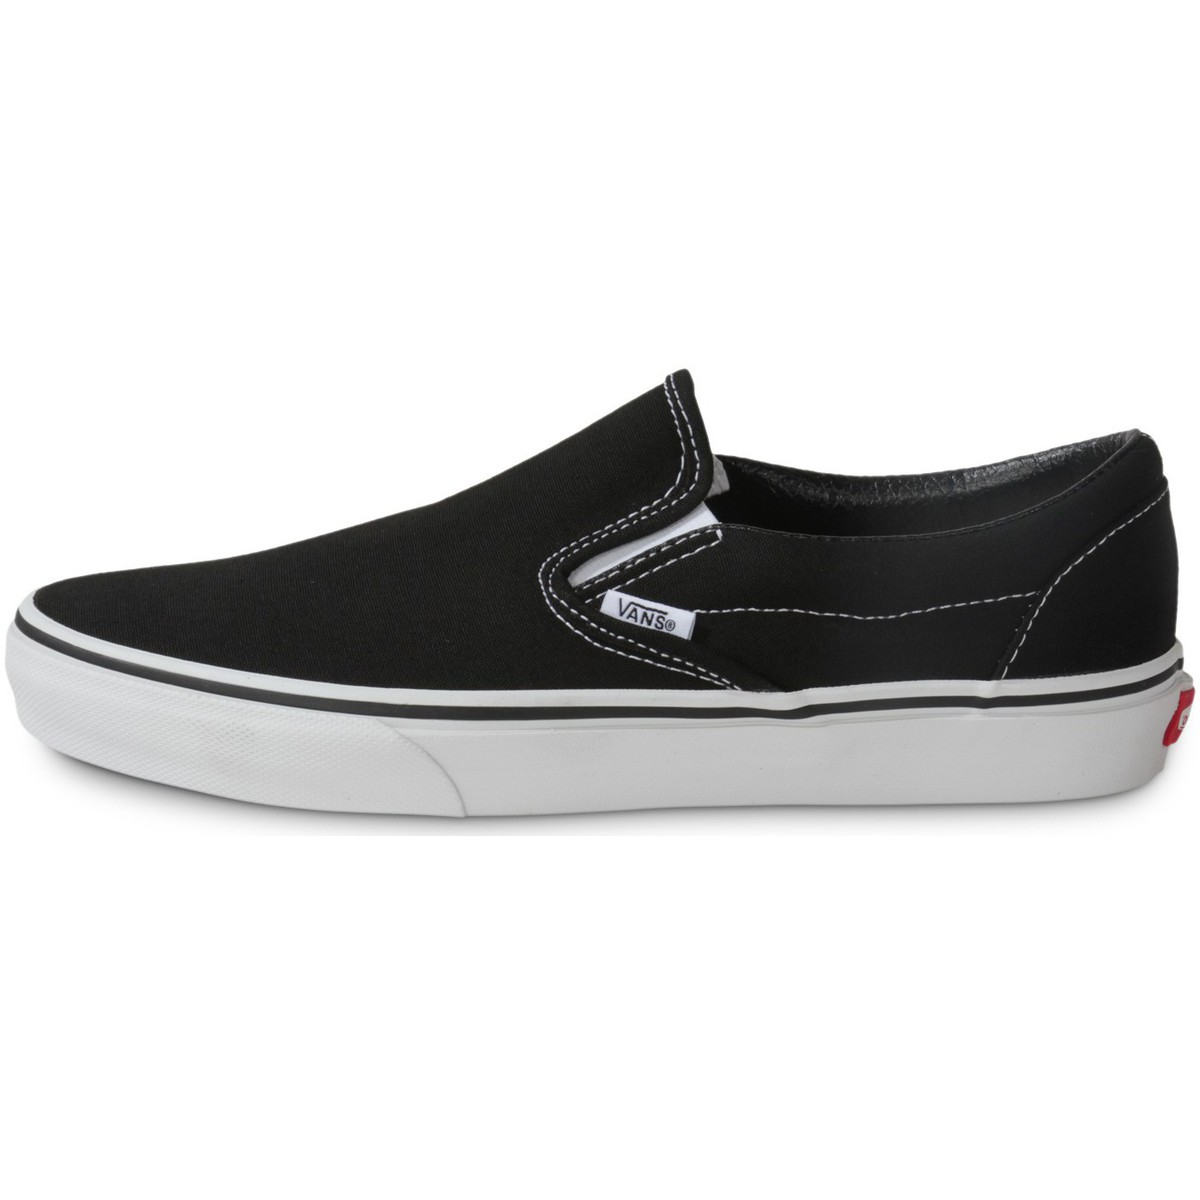 vans classic slip on noir chaussures chaussures de skate homme 89 18. Black Bedroom Furniture Sets. Home Design Ideas